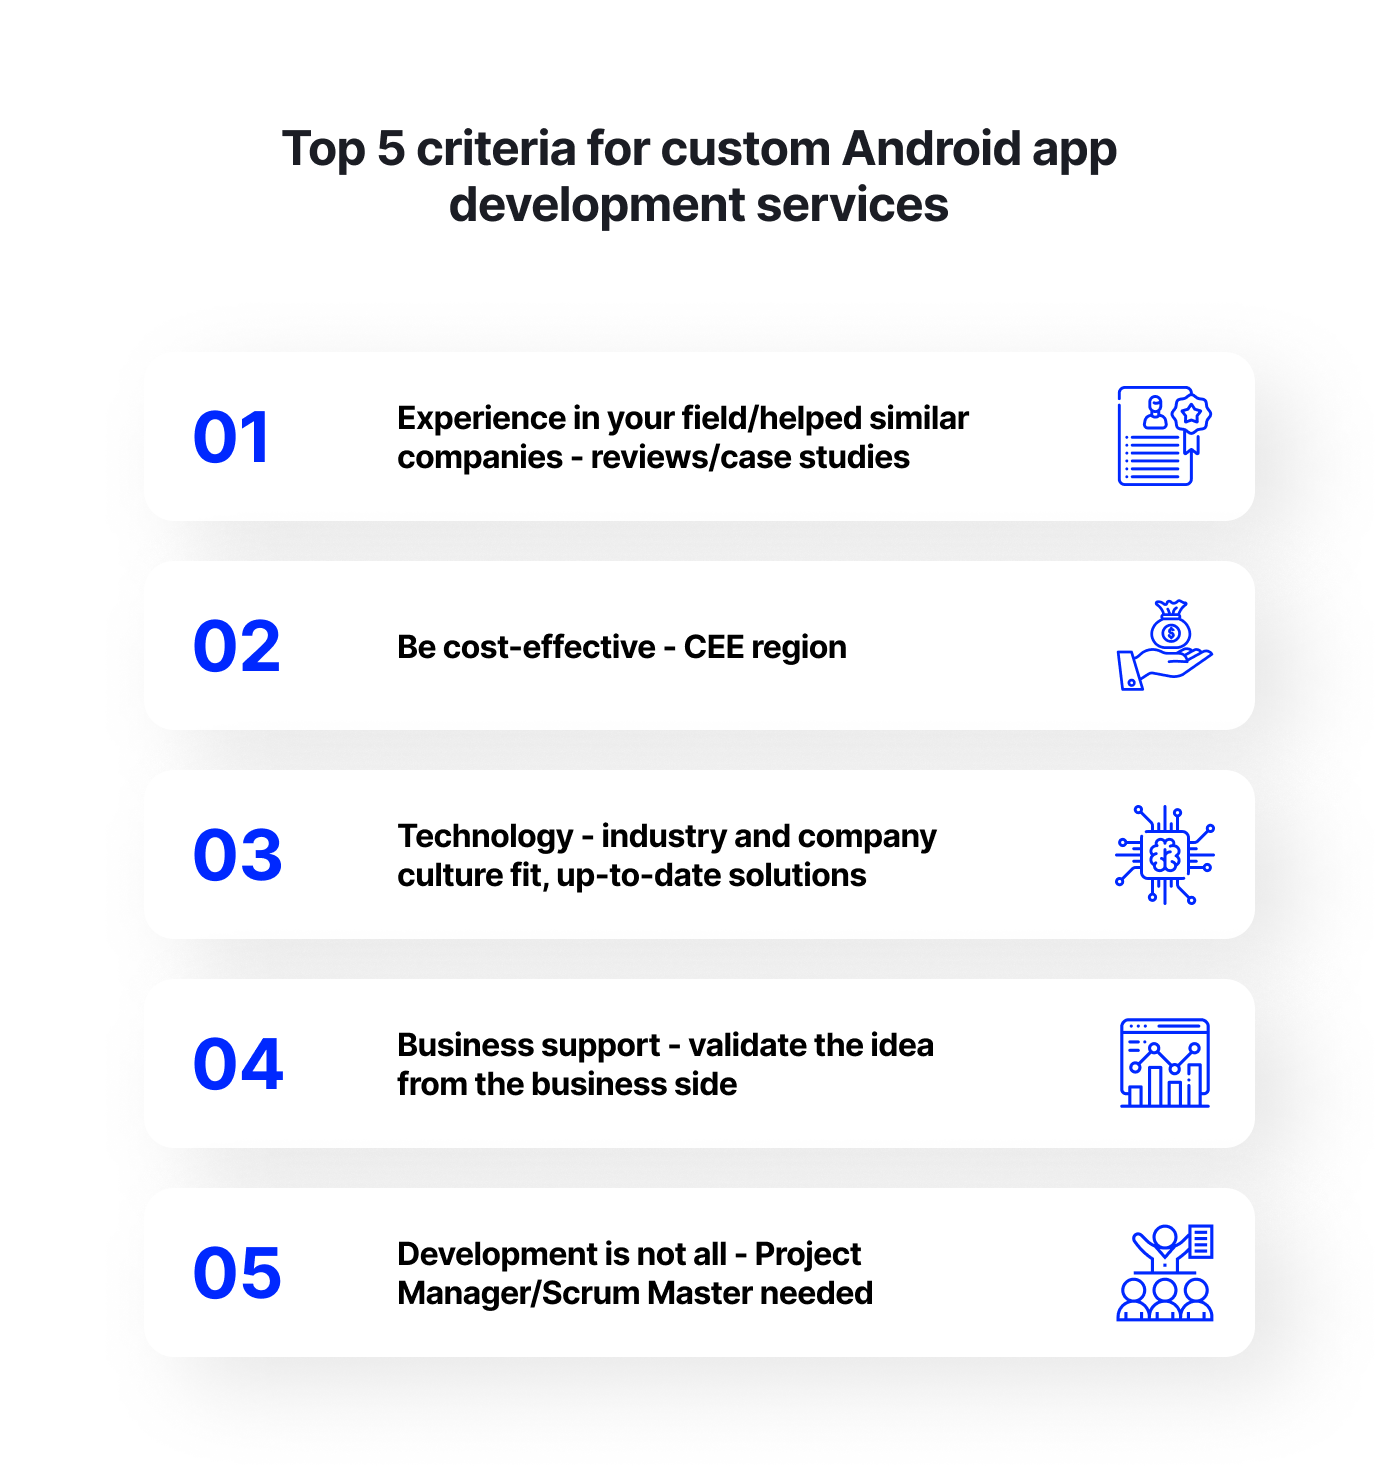 Top 5 criteria for custom Android app development services